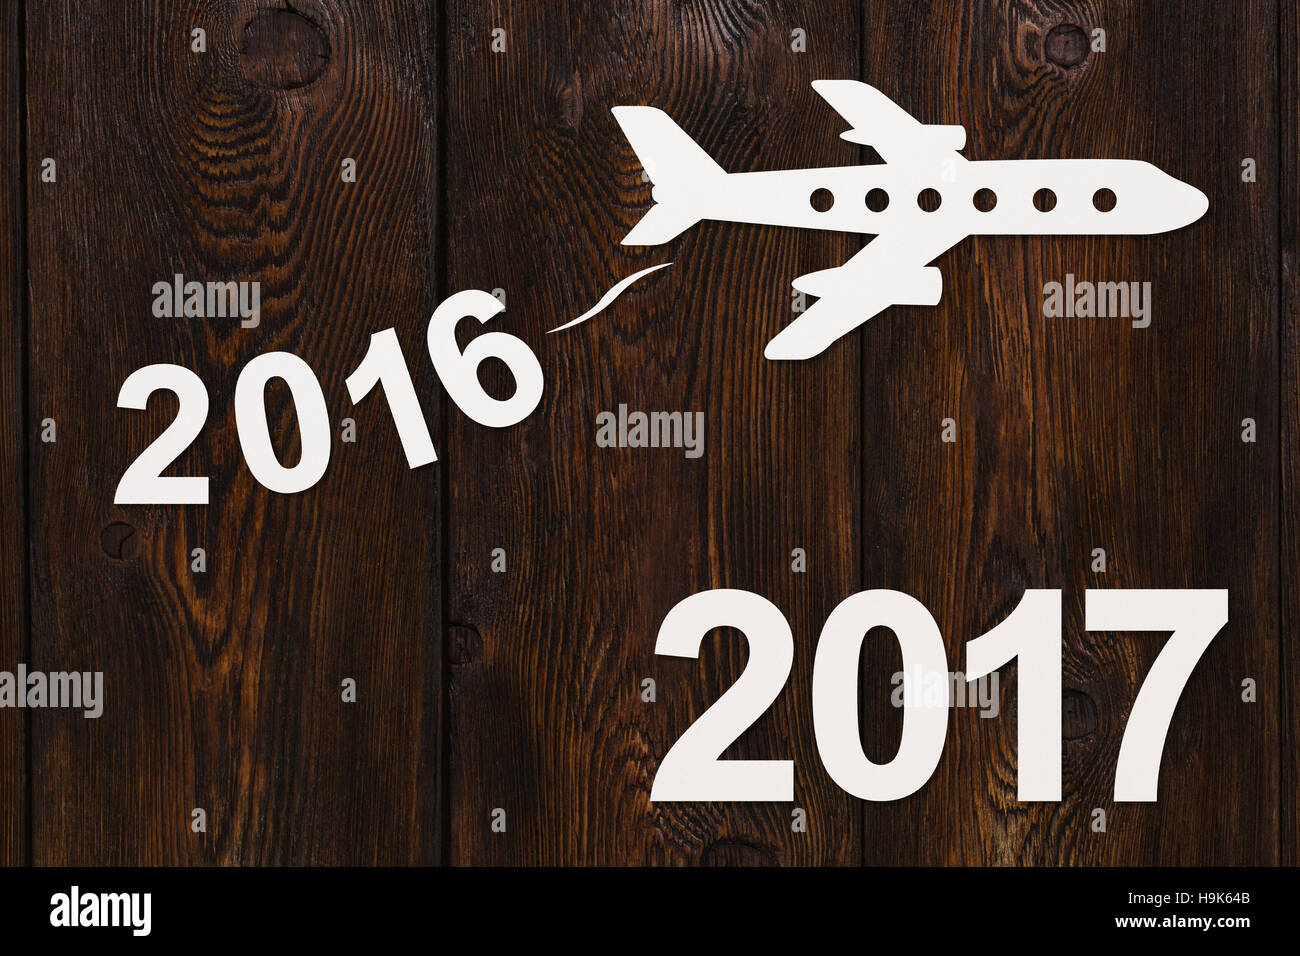 Paper flying plane. Abstract conceptual image. New year concept - Stock Image